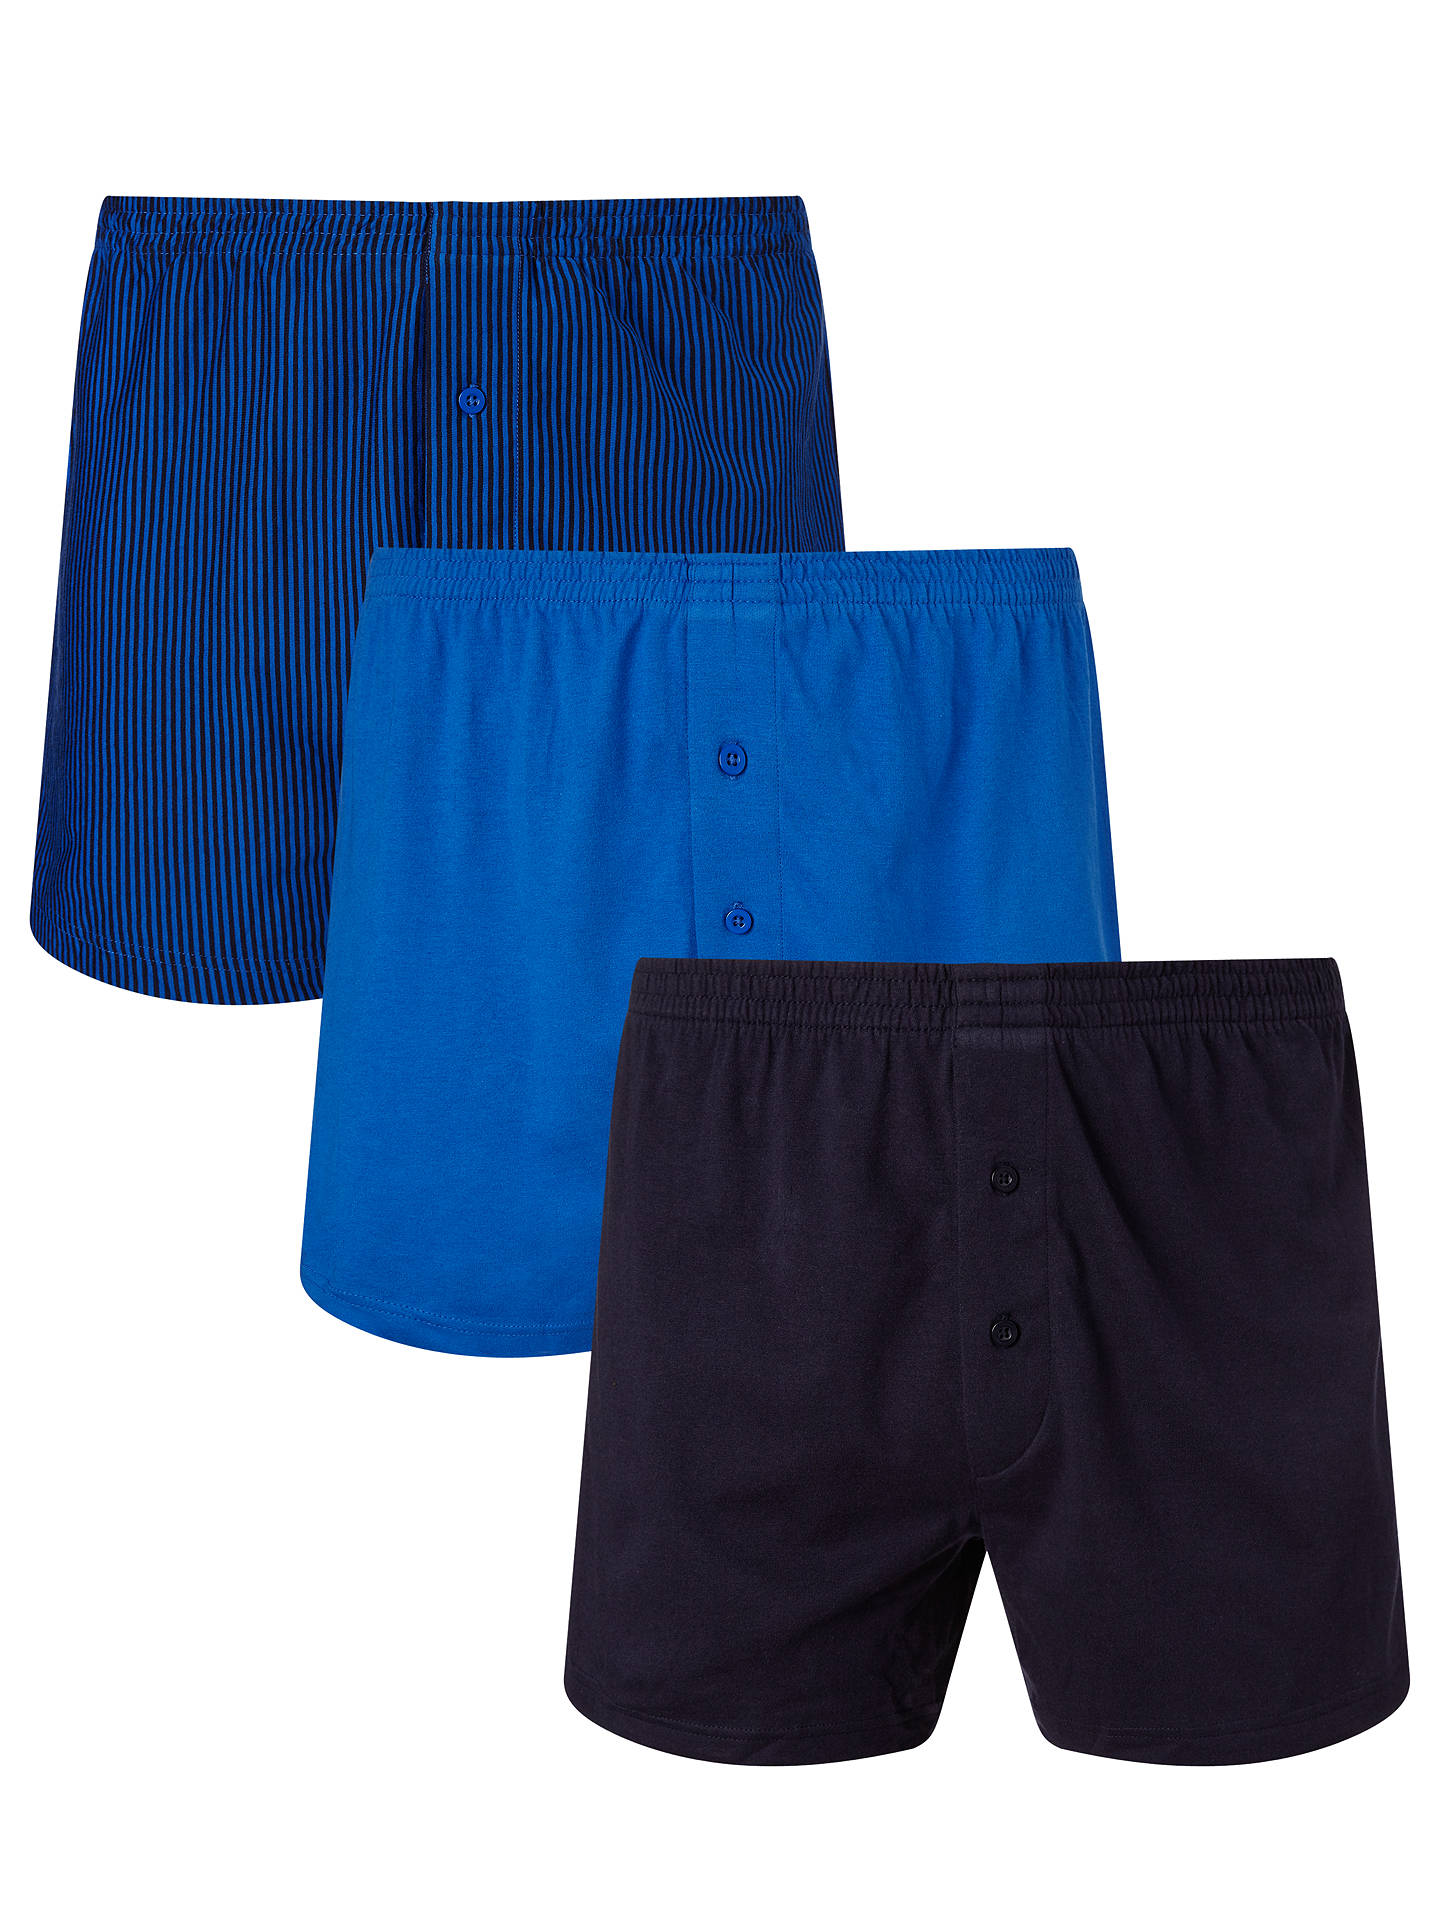 BuyJohn Lewis & Partners Organic Jersey Cotton Double Button Boxers, Pack of 3, Navy, S Online at johnlewis.com